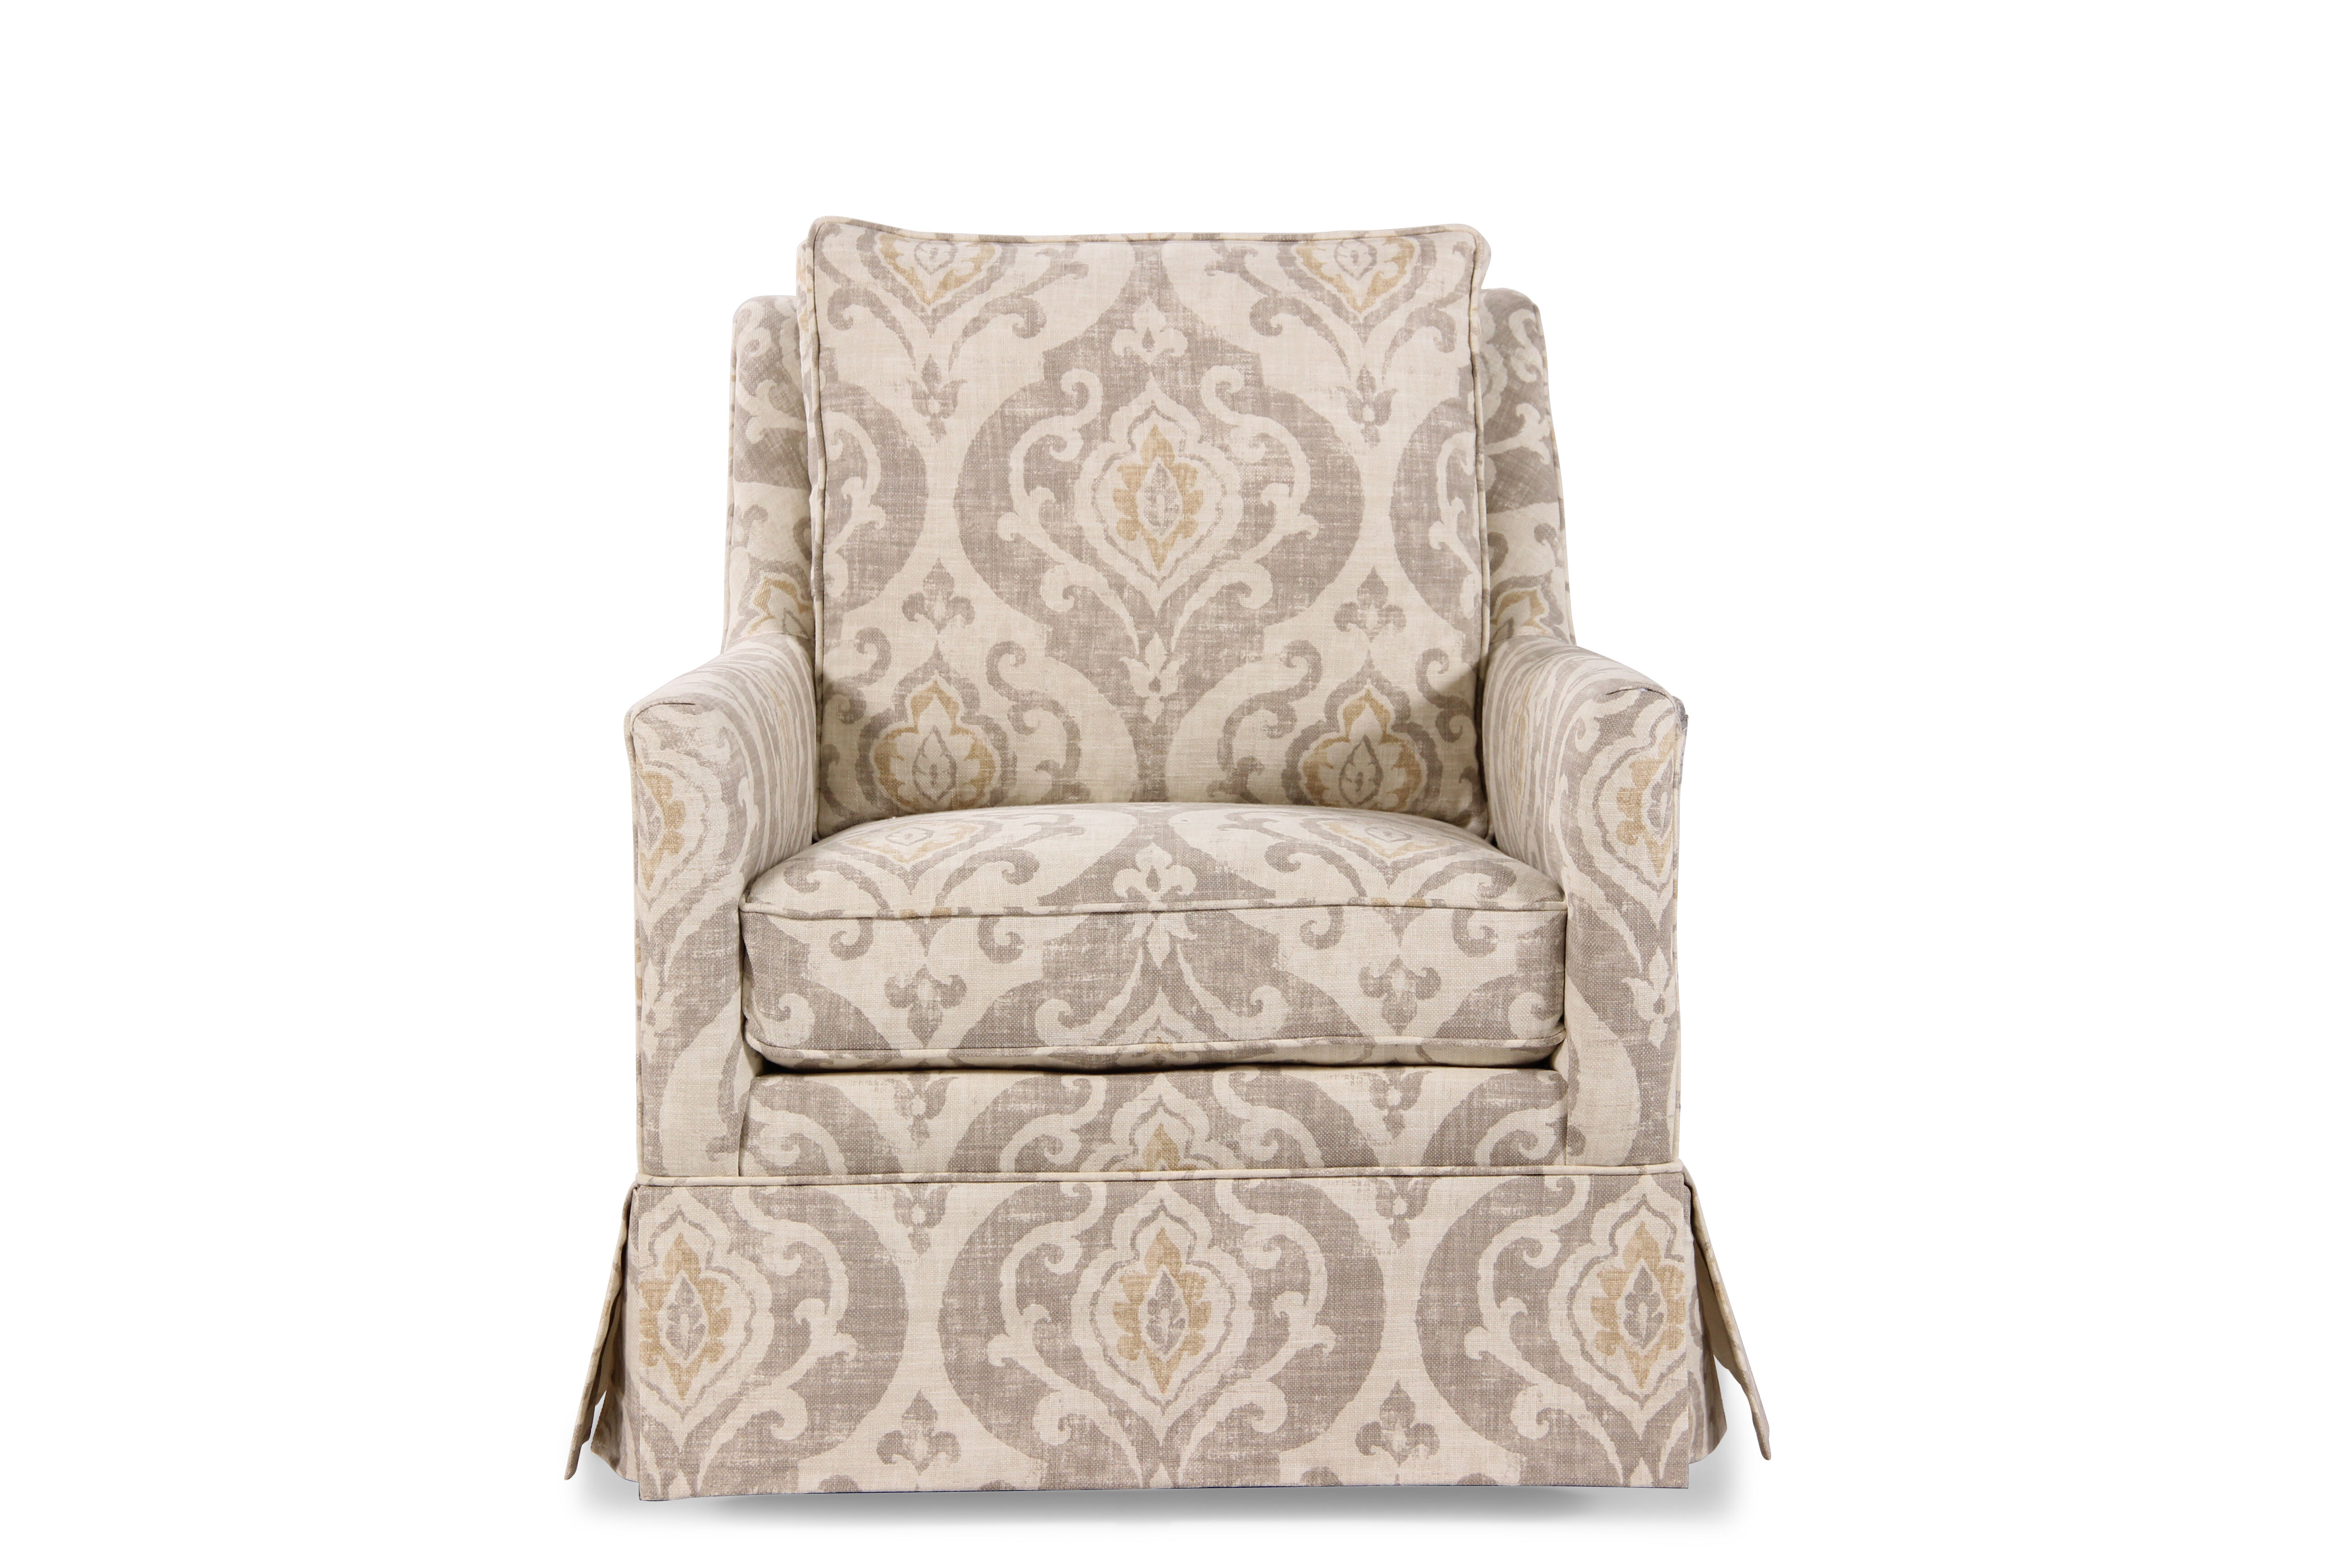 Images Paisley Patterned Transitional 29.5u0026quot; Swivel Chair In Cream  Paisley Patterned Transitional 29.5u0026quot; Swivel Chair In Cream